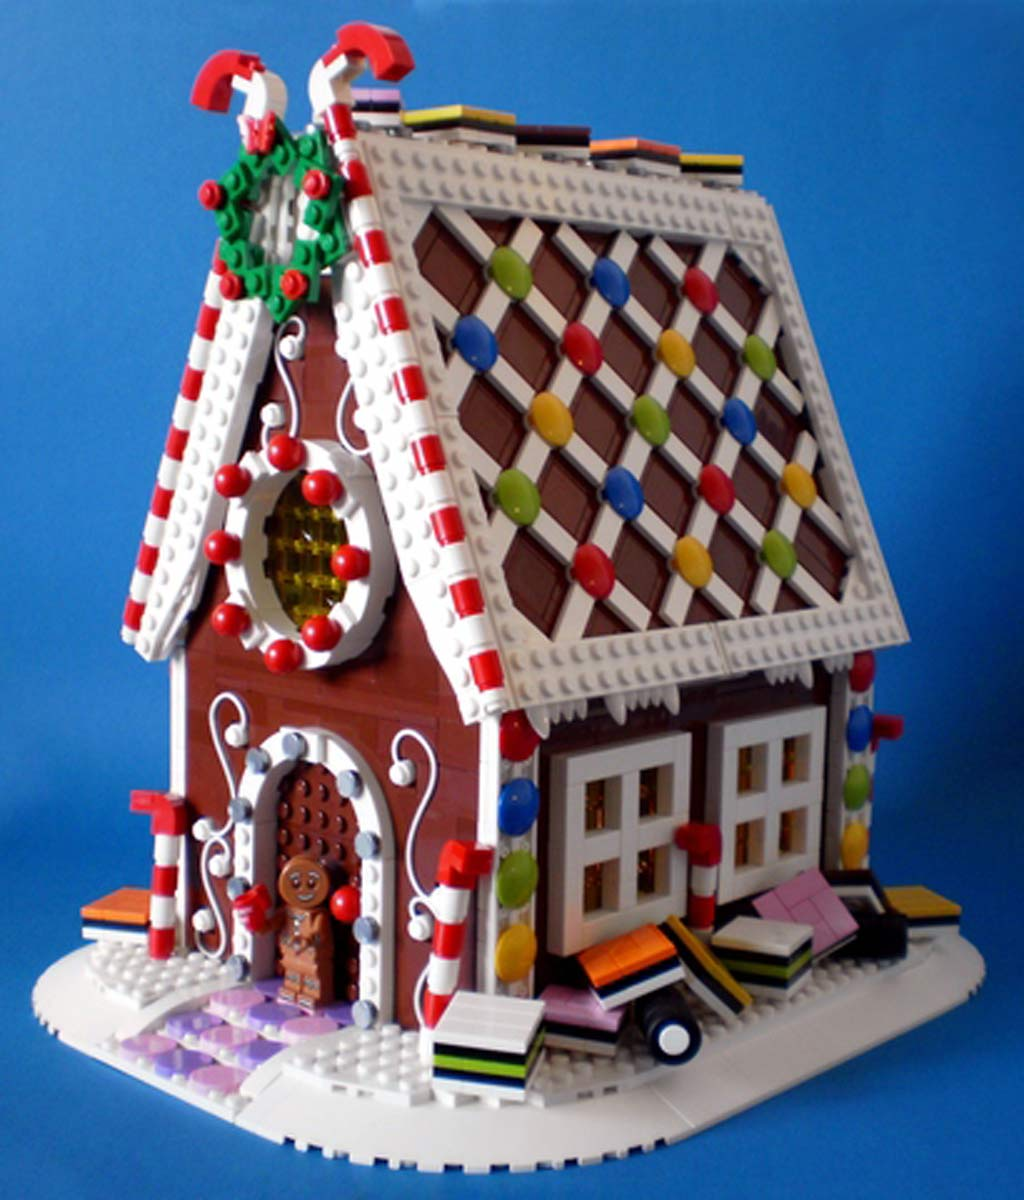 Gingerbread House | @ SwanDutchman / Lego Ideas